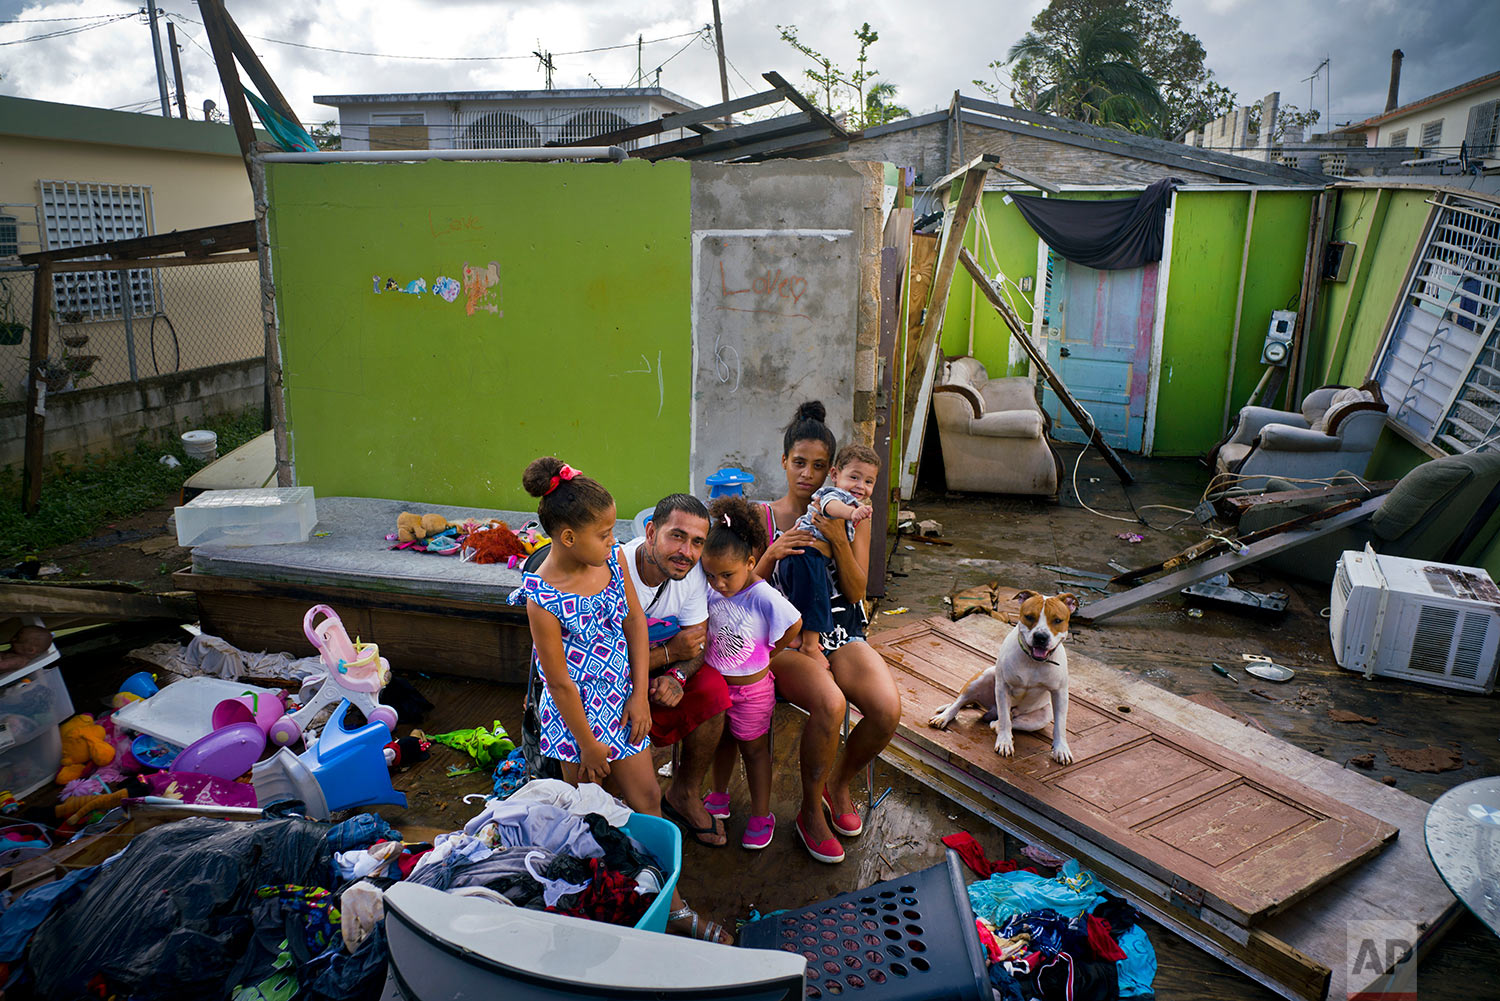 In this Saturday, Oct. 14, 2017 photo, Arden Dragoni, second from left, poses with his wife Sindy, their three children and dog Max, surrounded by what remains of their home destroyed by Hurricane Maria in Toa Baja, Puerto Rico. (AP Photo/Ramon Espinosa)